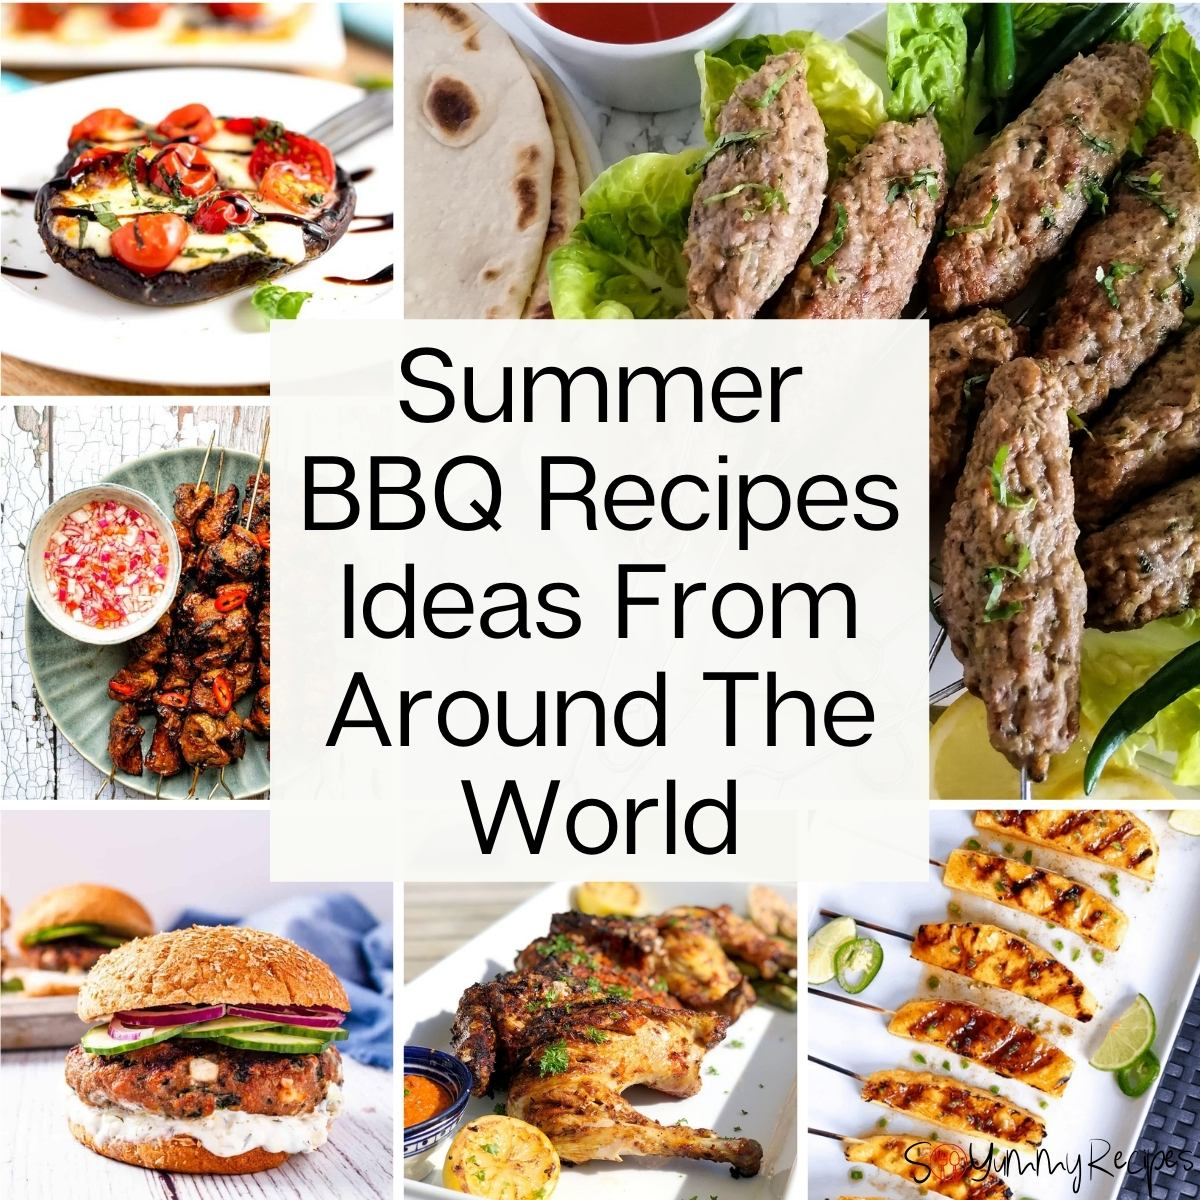 photo collage of barbecued food with an overlay text of Summer BBQ recipes ideas from around the world